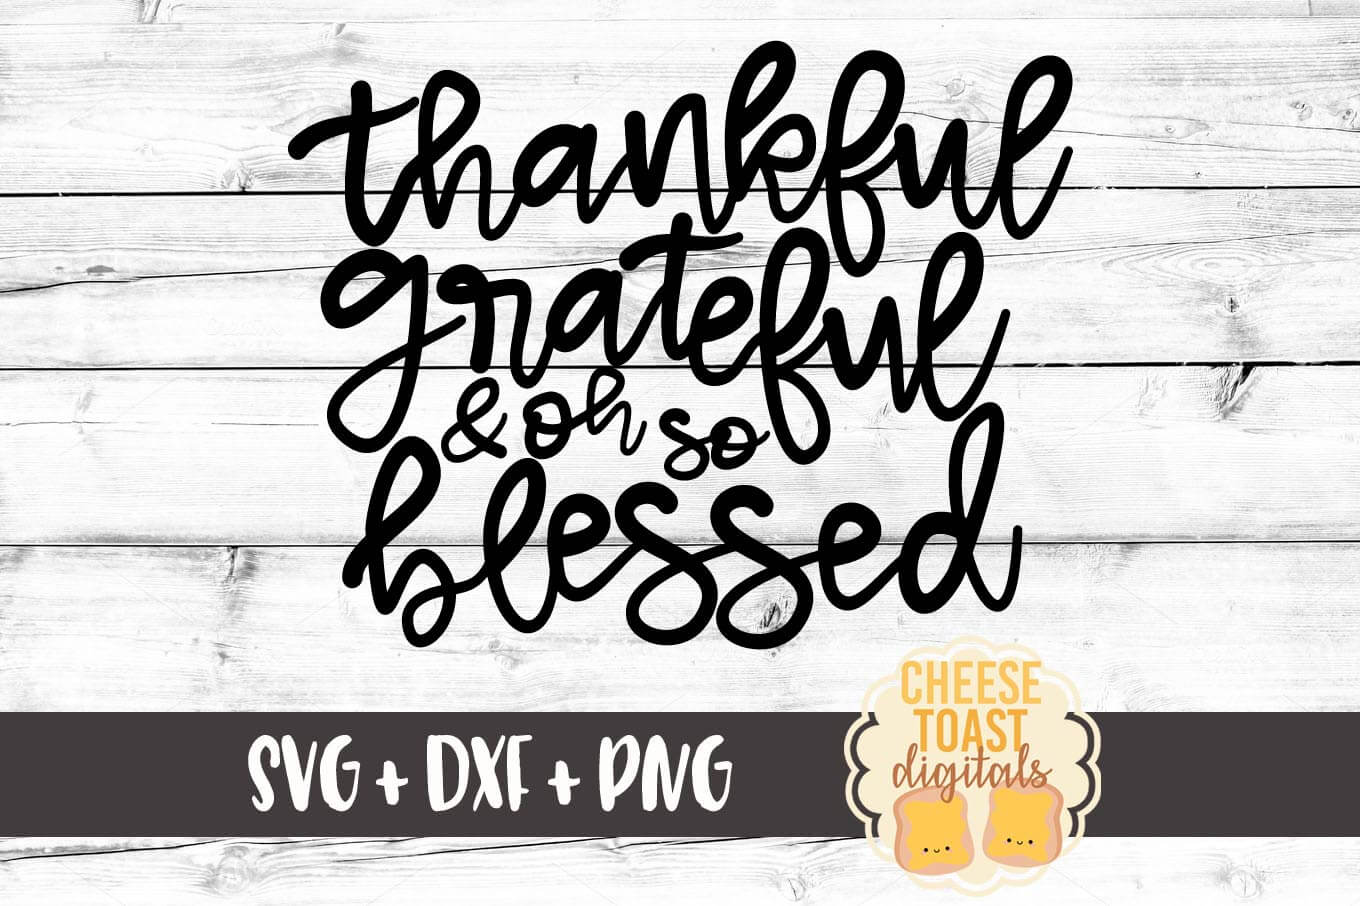 Thankful Grateful and Oh So Blessed - SVG, PNG, DXF